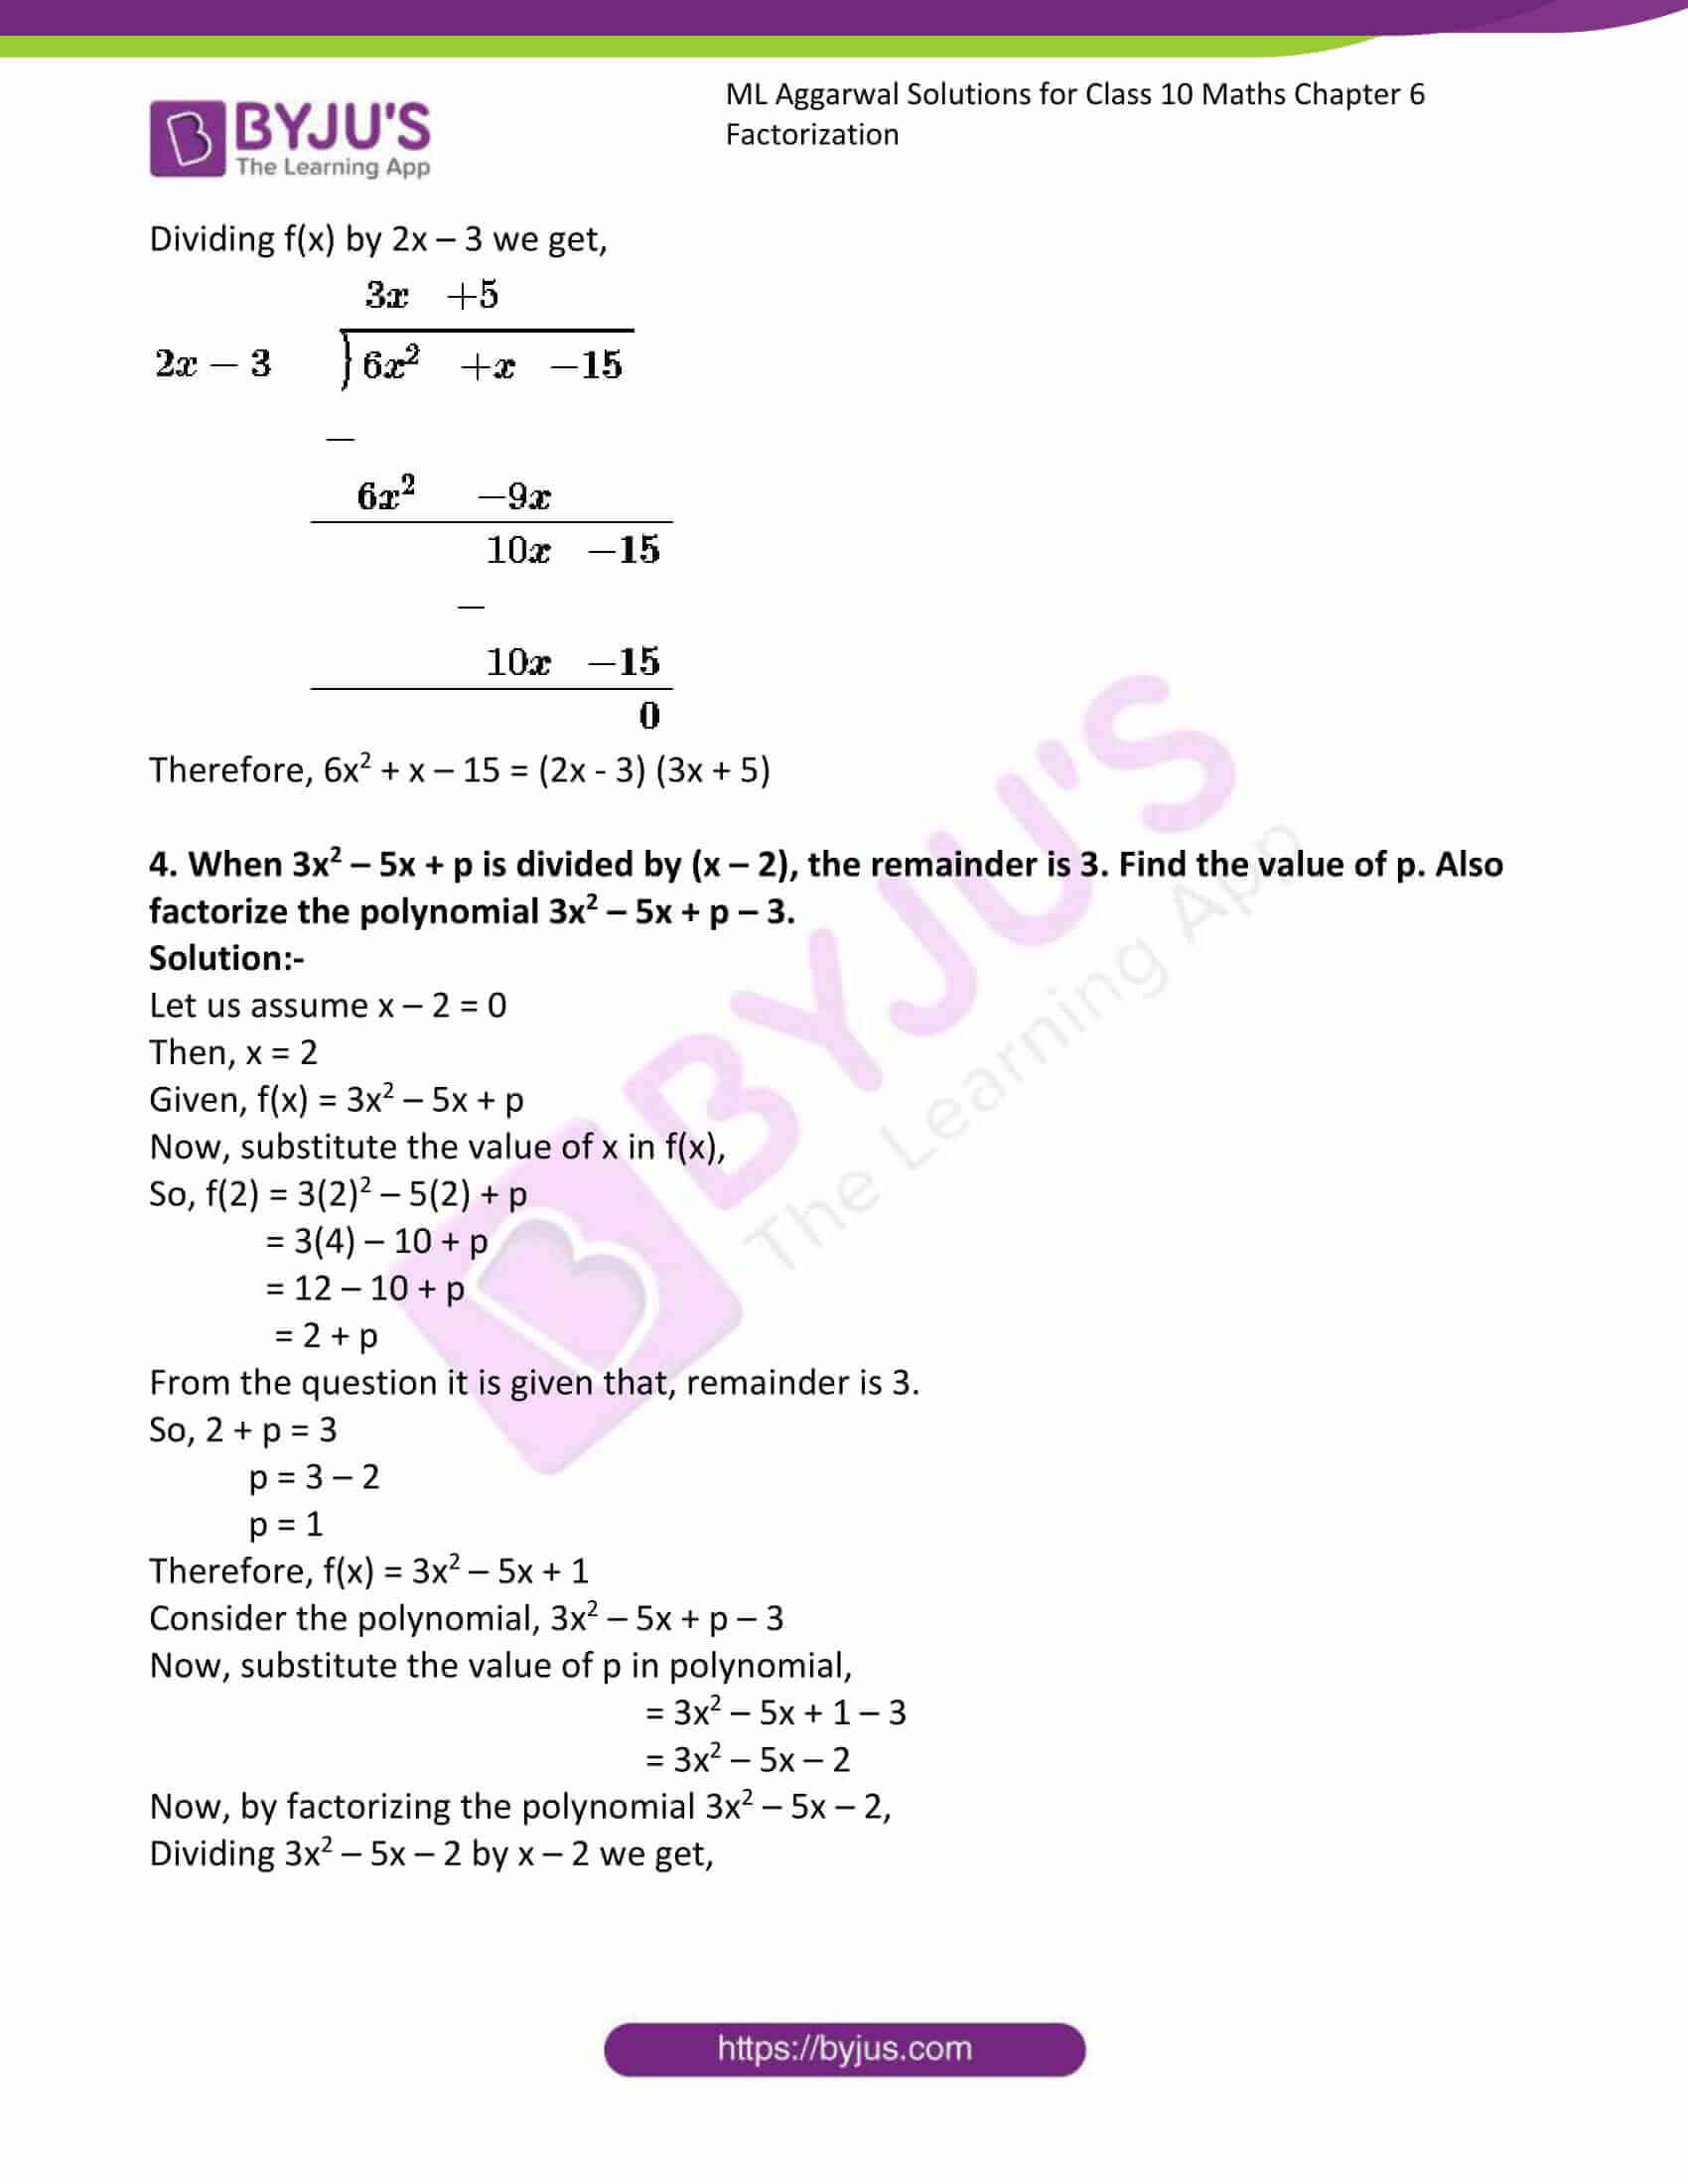 ml aggarwal solutions class 10 maths chapter 6 32